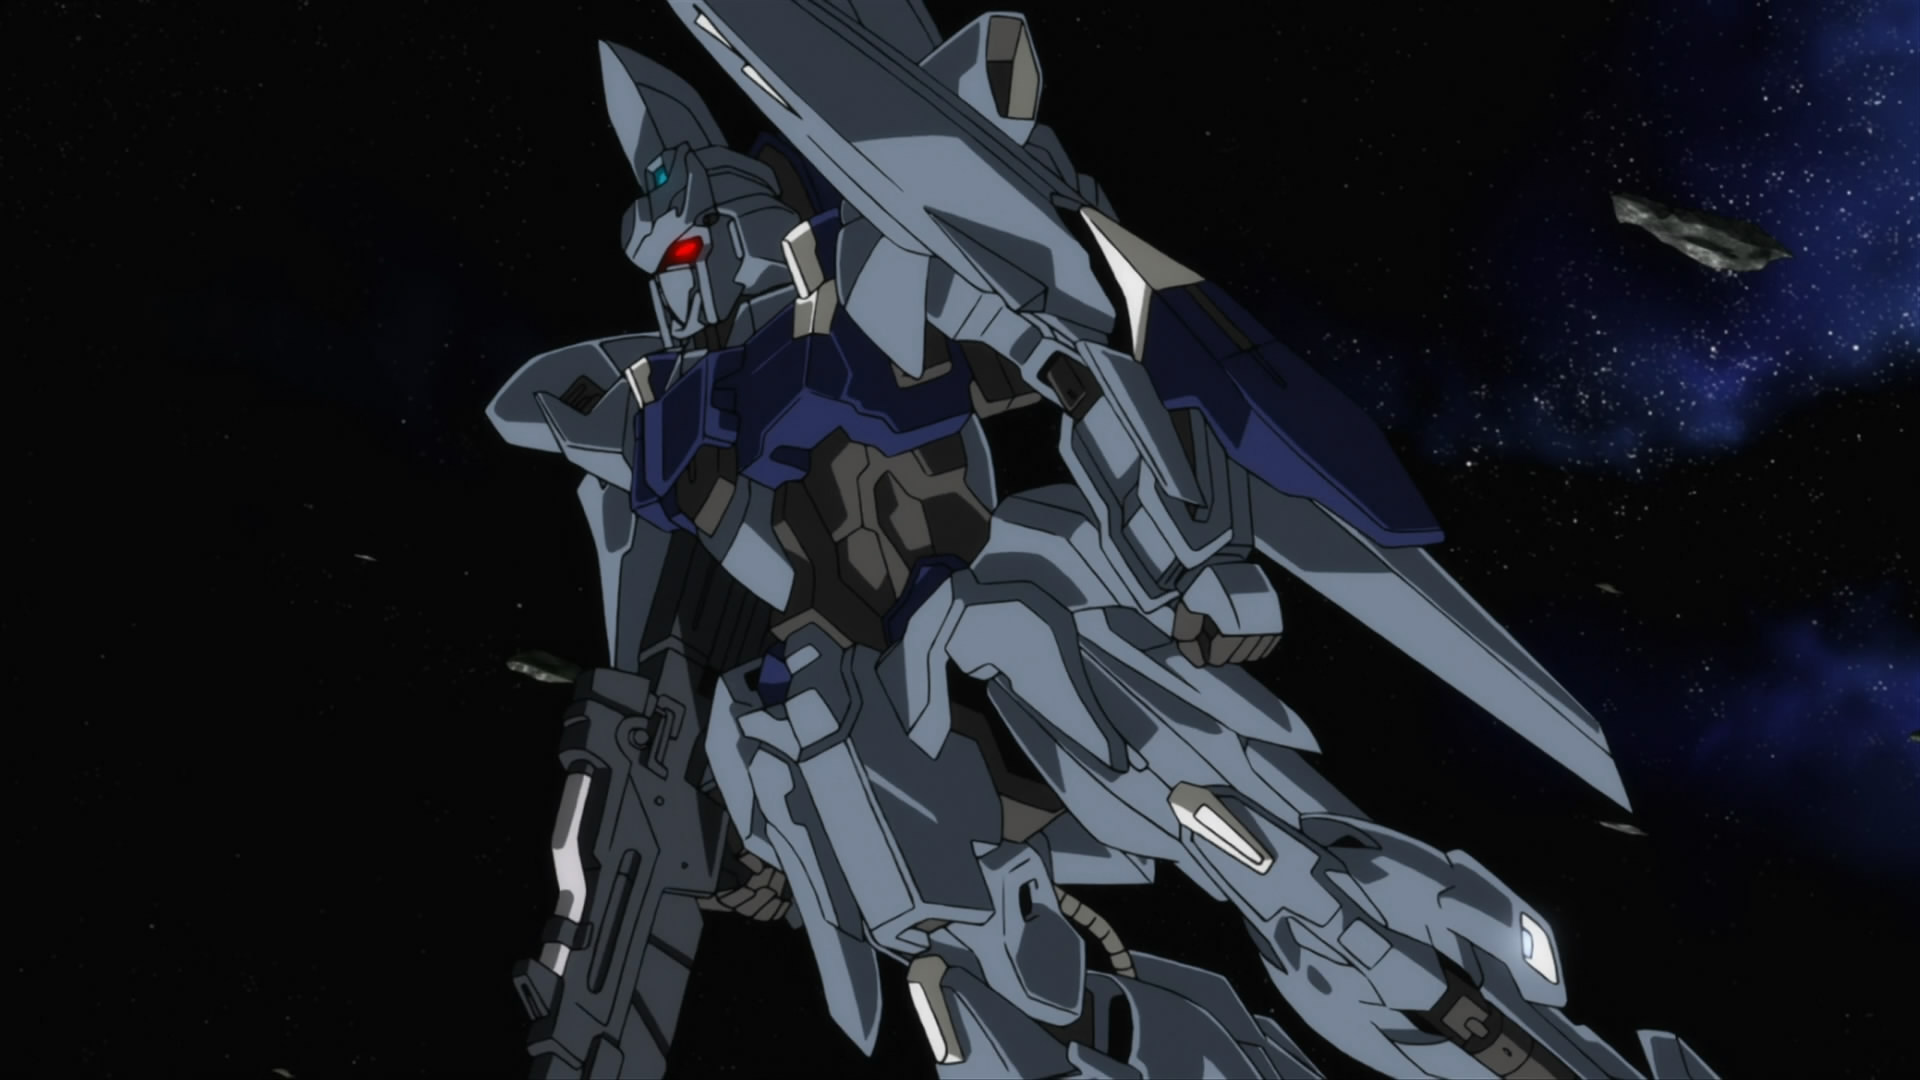 Wallpapers HD Desktop Wallpapers Gundam Wallpapers 110jpg 1920 x 1920x1080